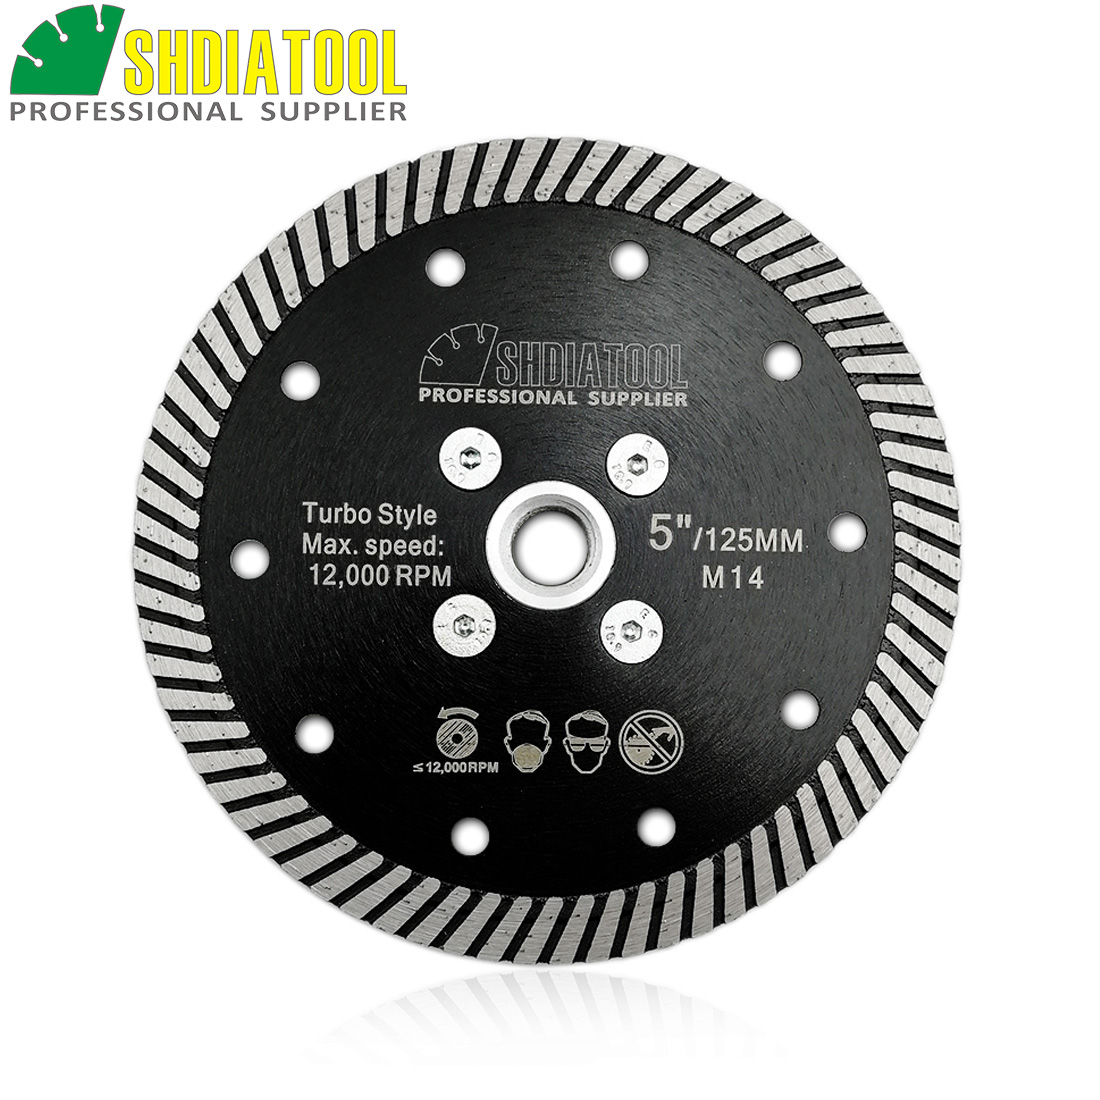 SHDIATOOL M14 Flange Dia 125mm/5inch Diamond Hot Pressed Narrow Turbo Blade Cutting Disc For Granite Marble Concrete Masonry